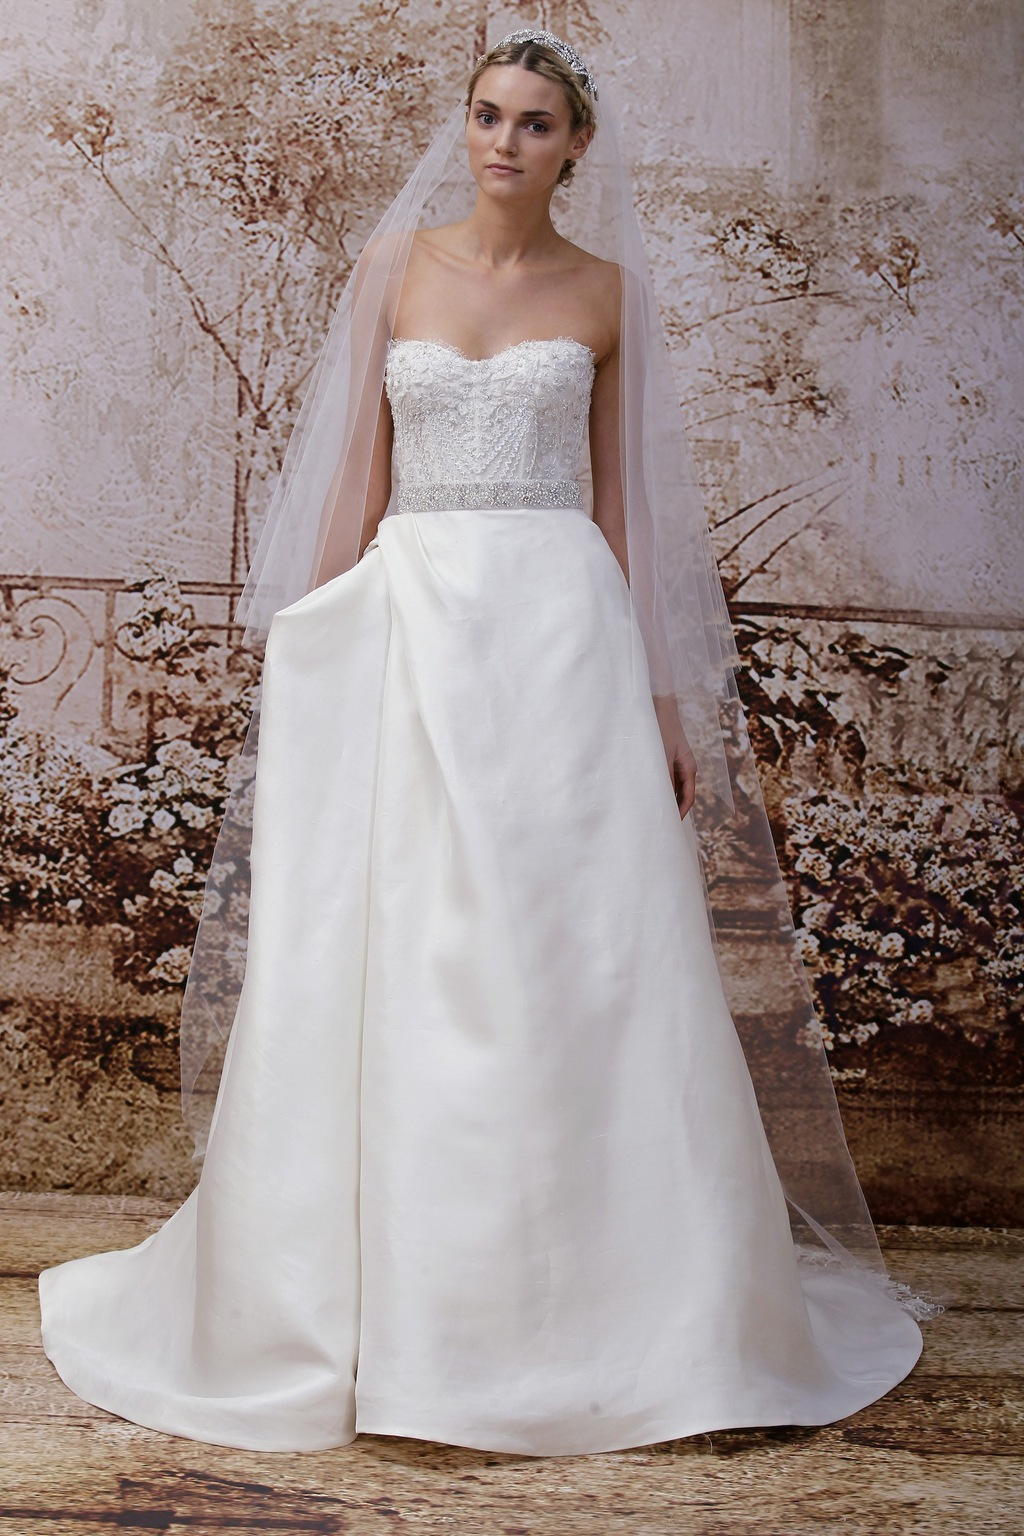 Wedding-dress-by-monique-lhuillier-fall-2014-bridal-look-31.full